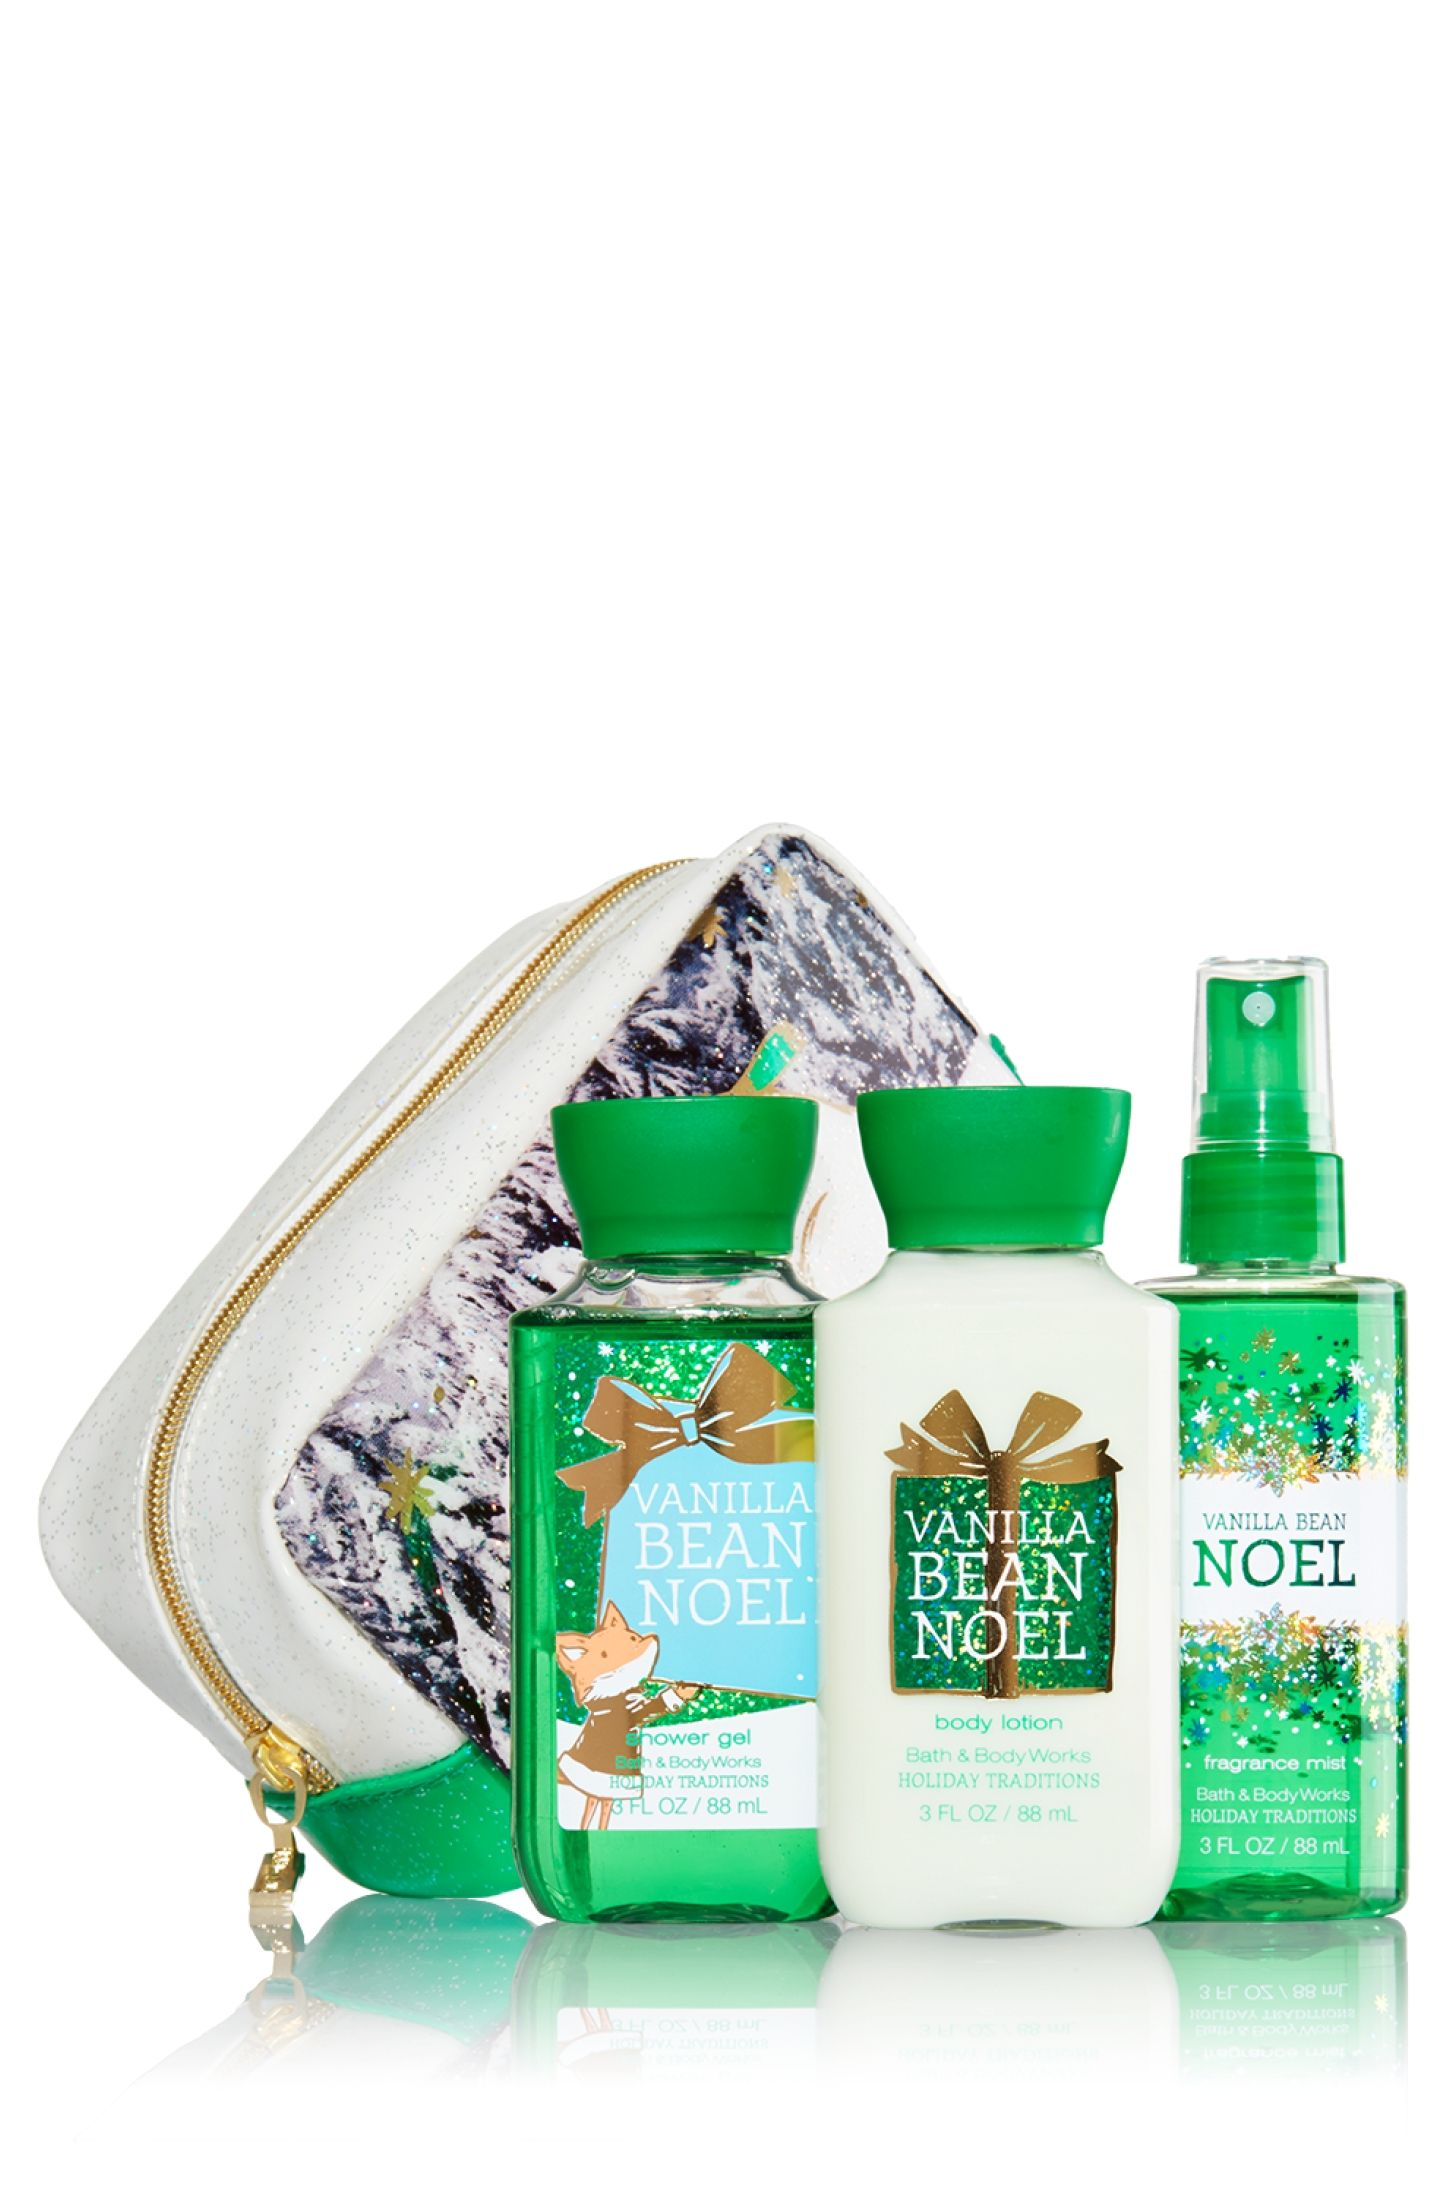 Bath and body works holiday scents - Vanilla Bean Noel Winter Friends Gift Set Signature Collection Bath Body Works